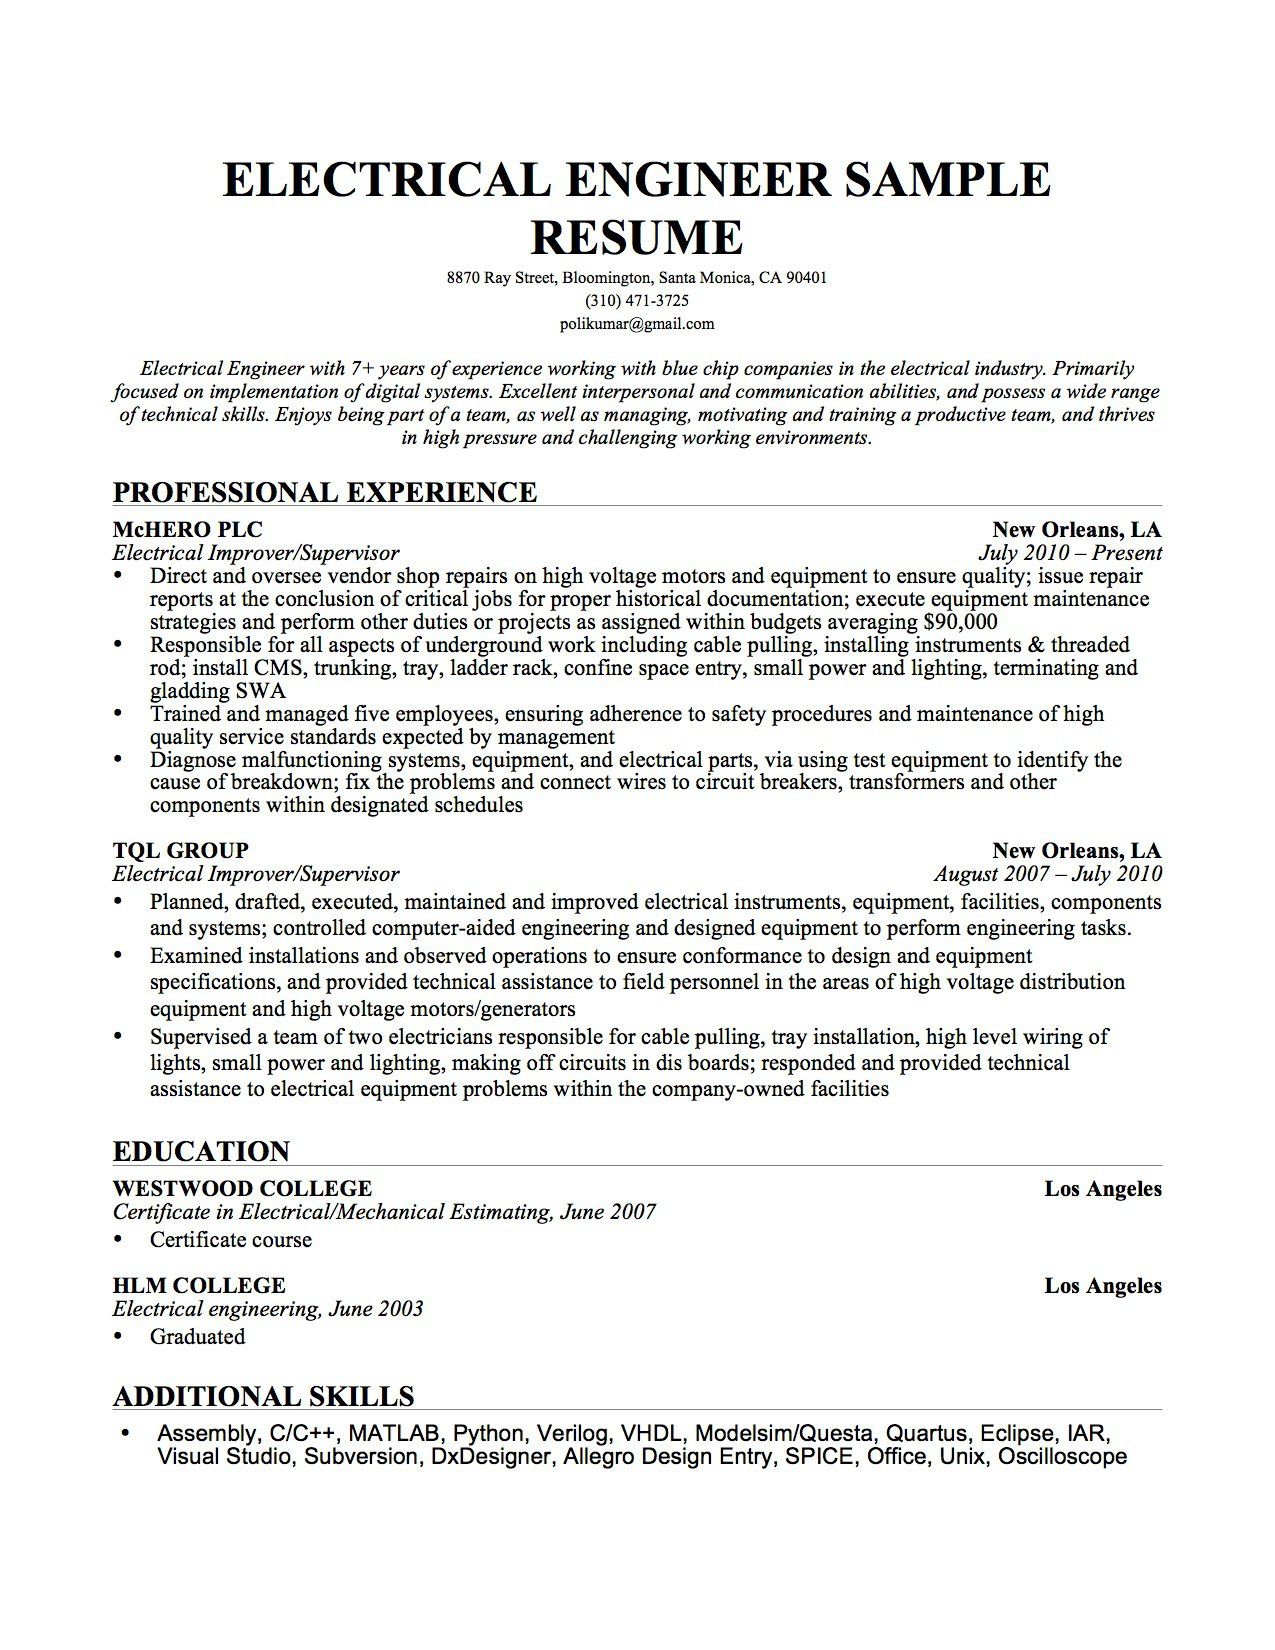 Engineer sample resume equipment fixed biomedical technician cover engineer sample resume equipment fixed biomedical technician cover letter vosvetenet spiritdancerdesigns Images